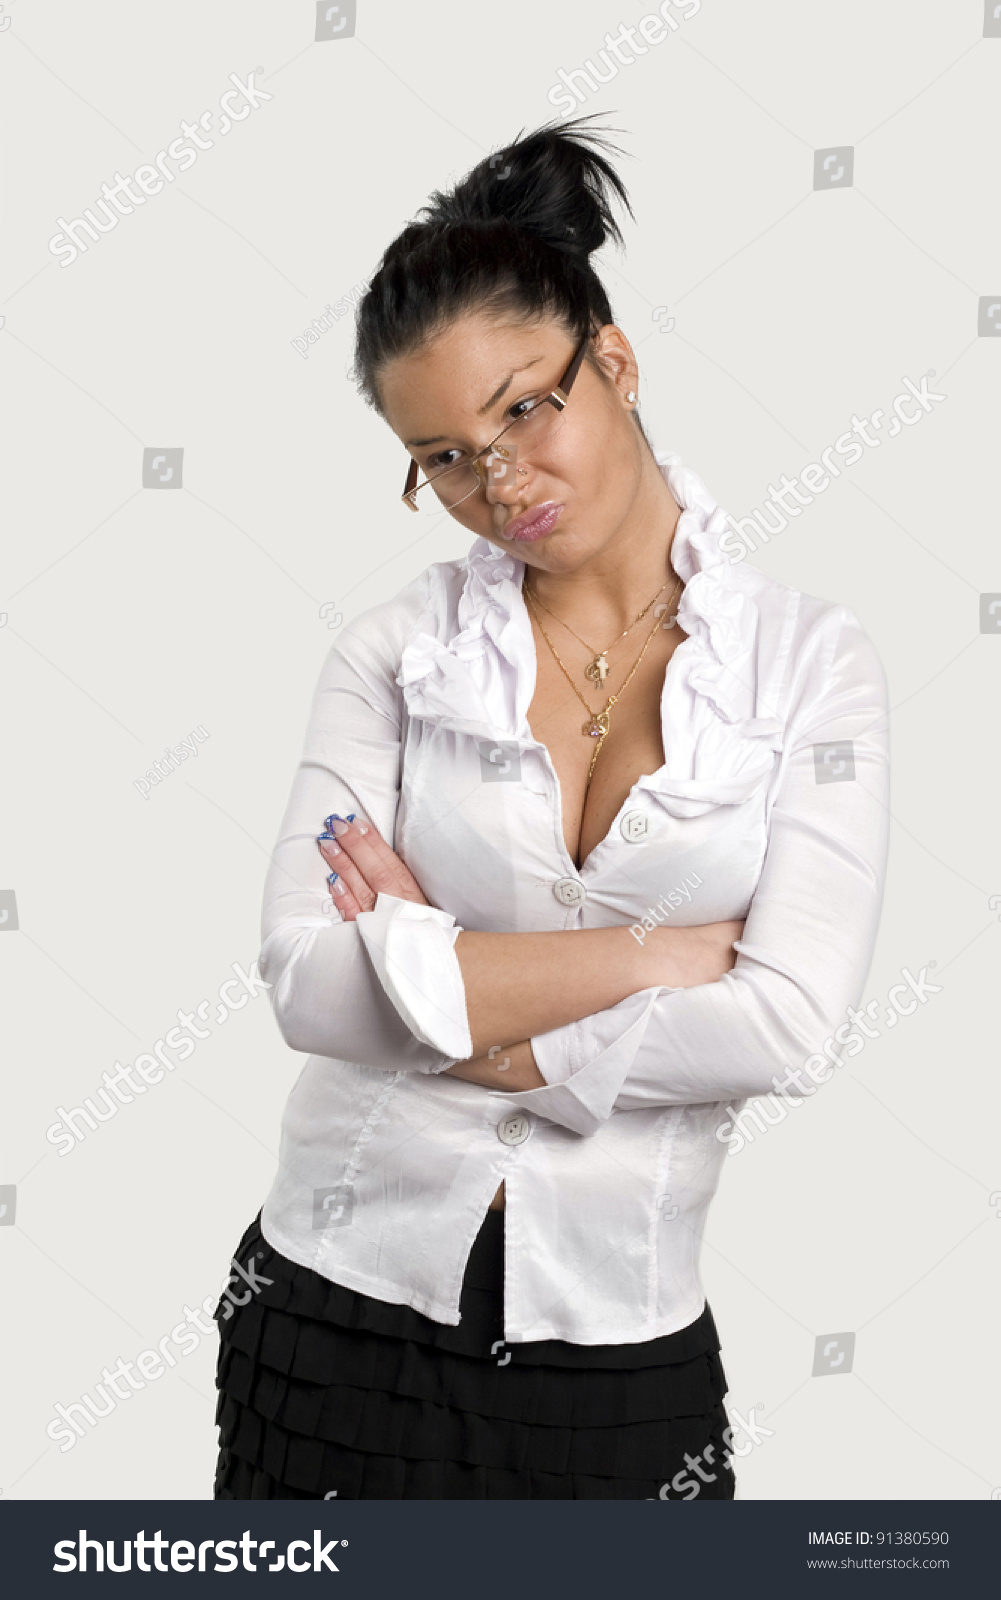 be angry sex teacher calvage stock photo (edit now) 91380590